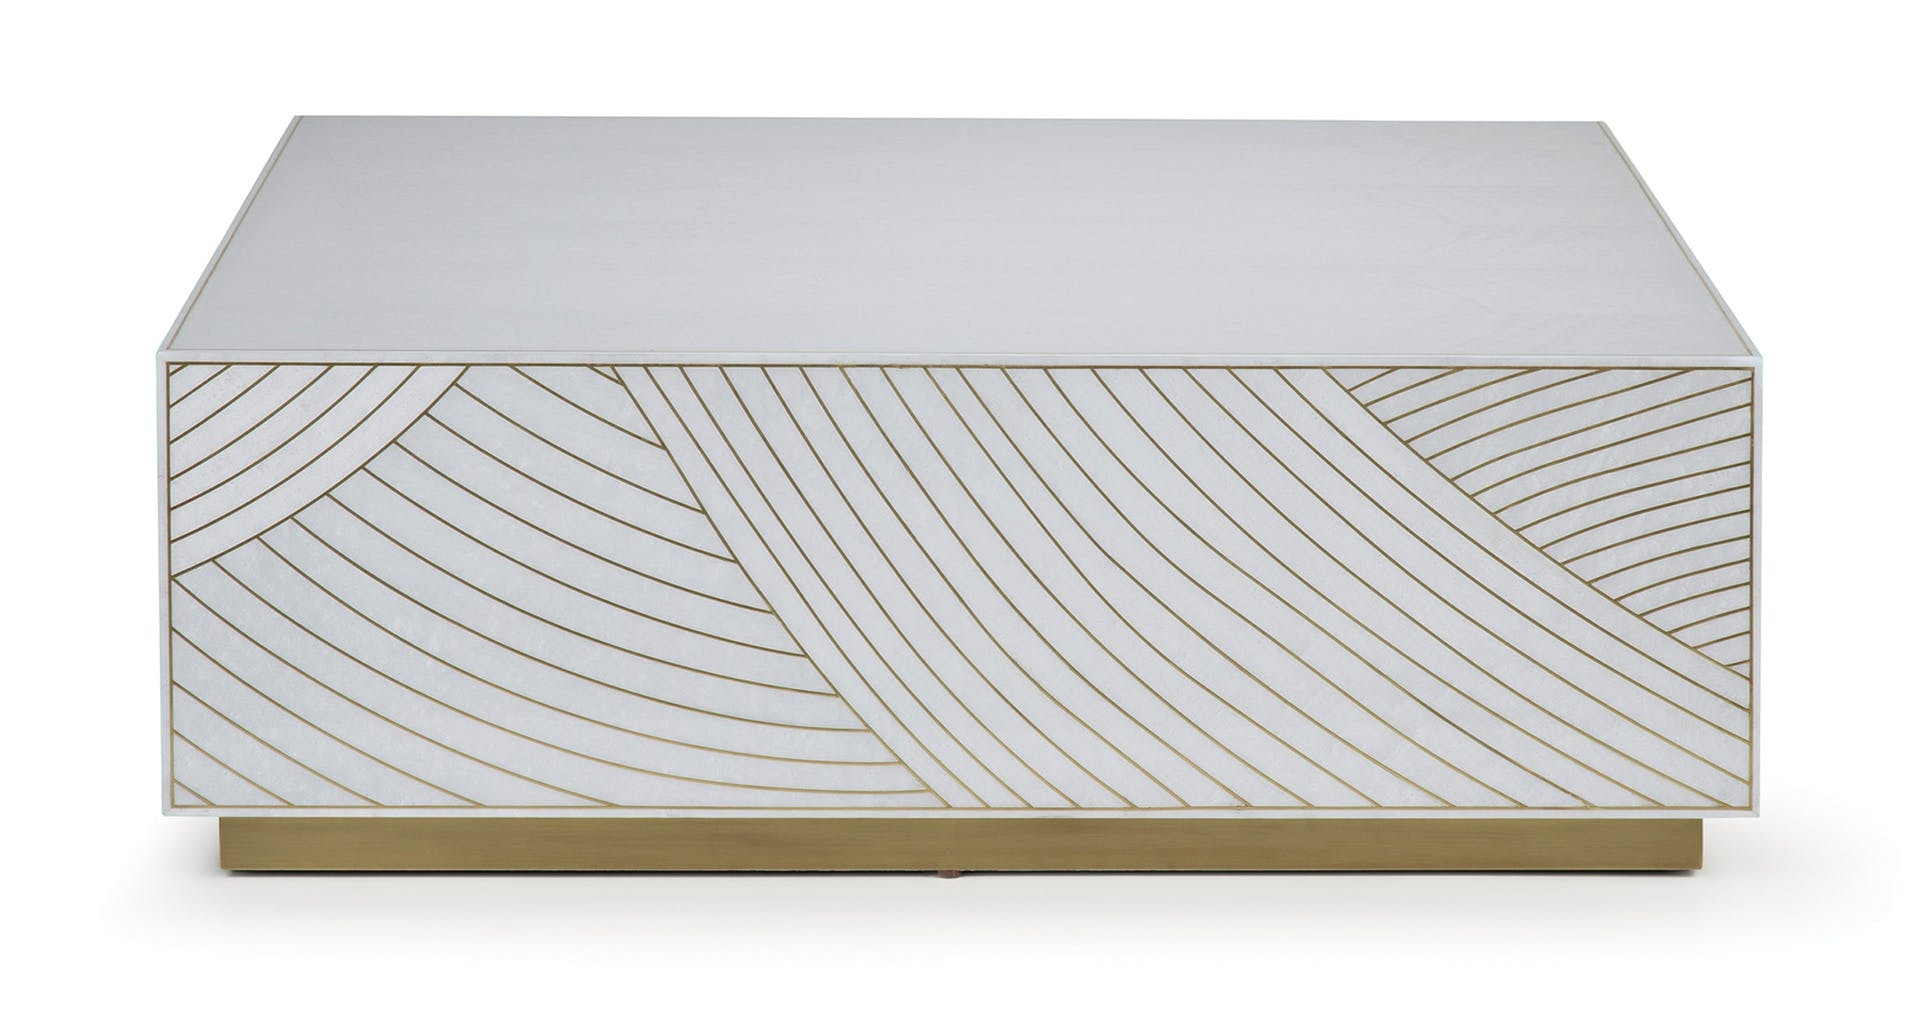 Picture of: Bethan Gray Dhow Block Coffee Table Bethan Gray Collection Shop Online